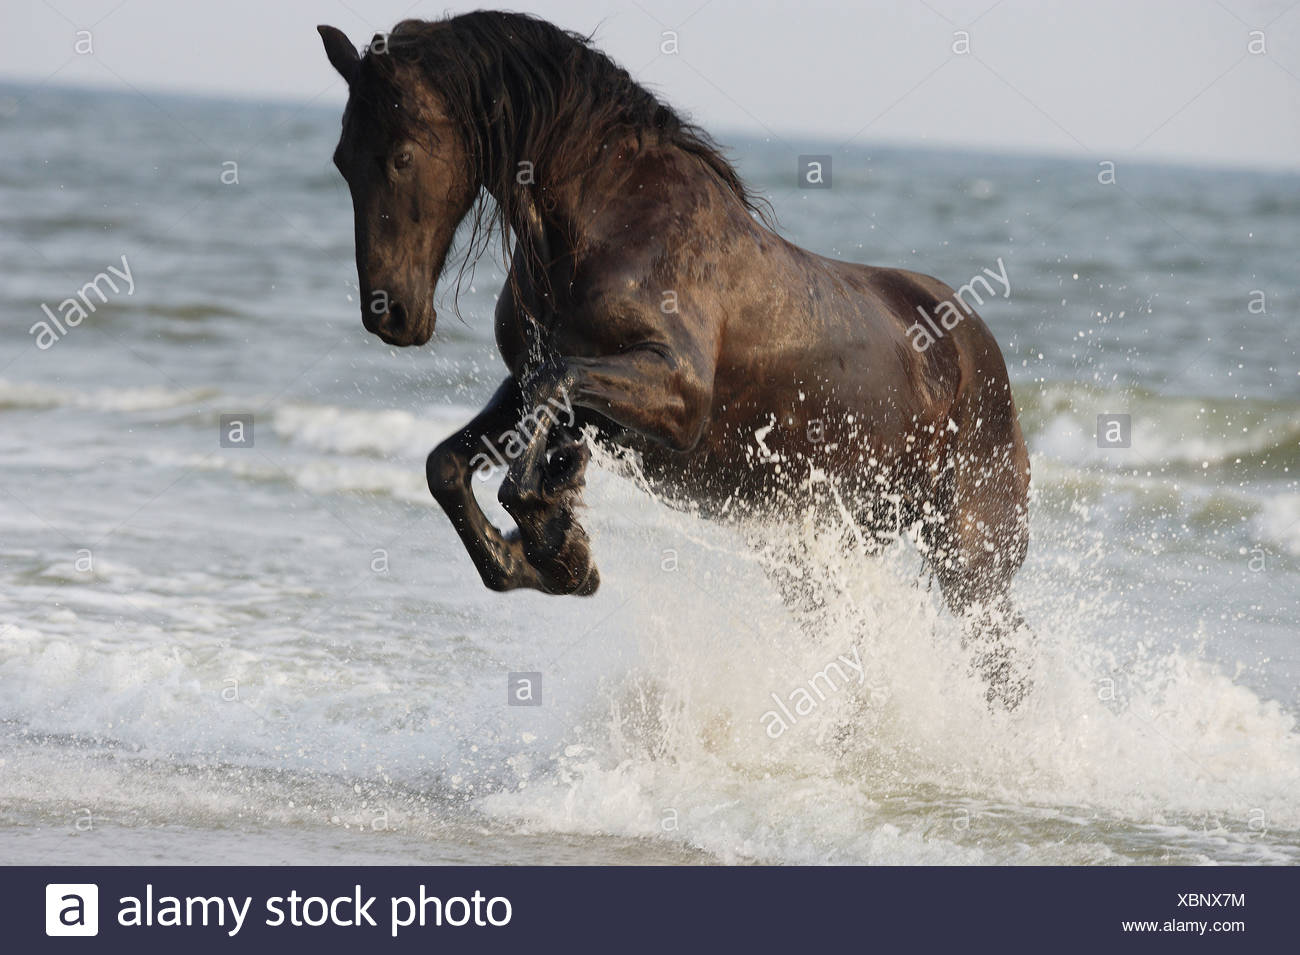 Friesian Horse Jumping In Water Stock Photo Alamy